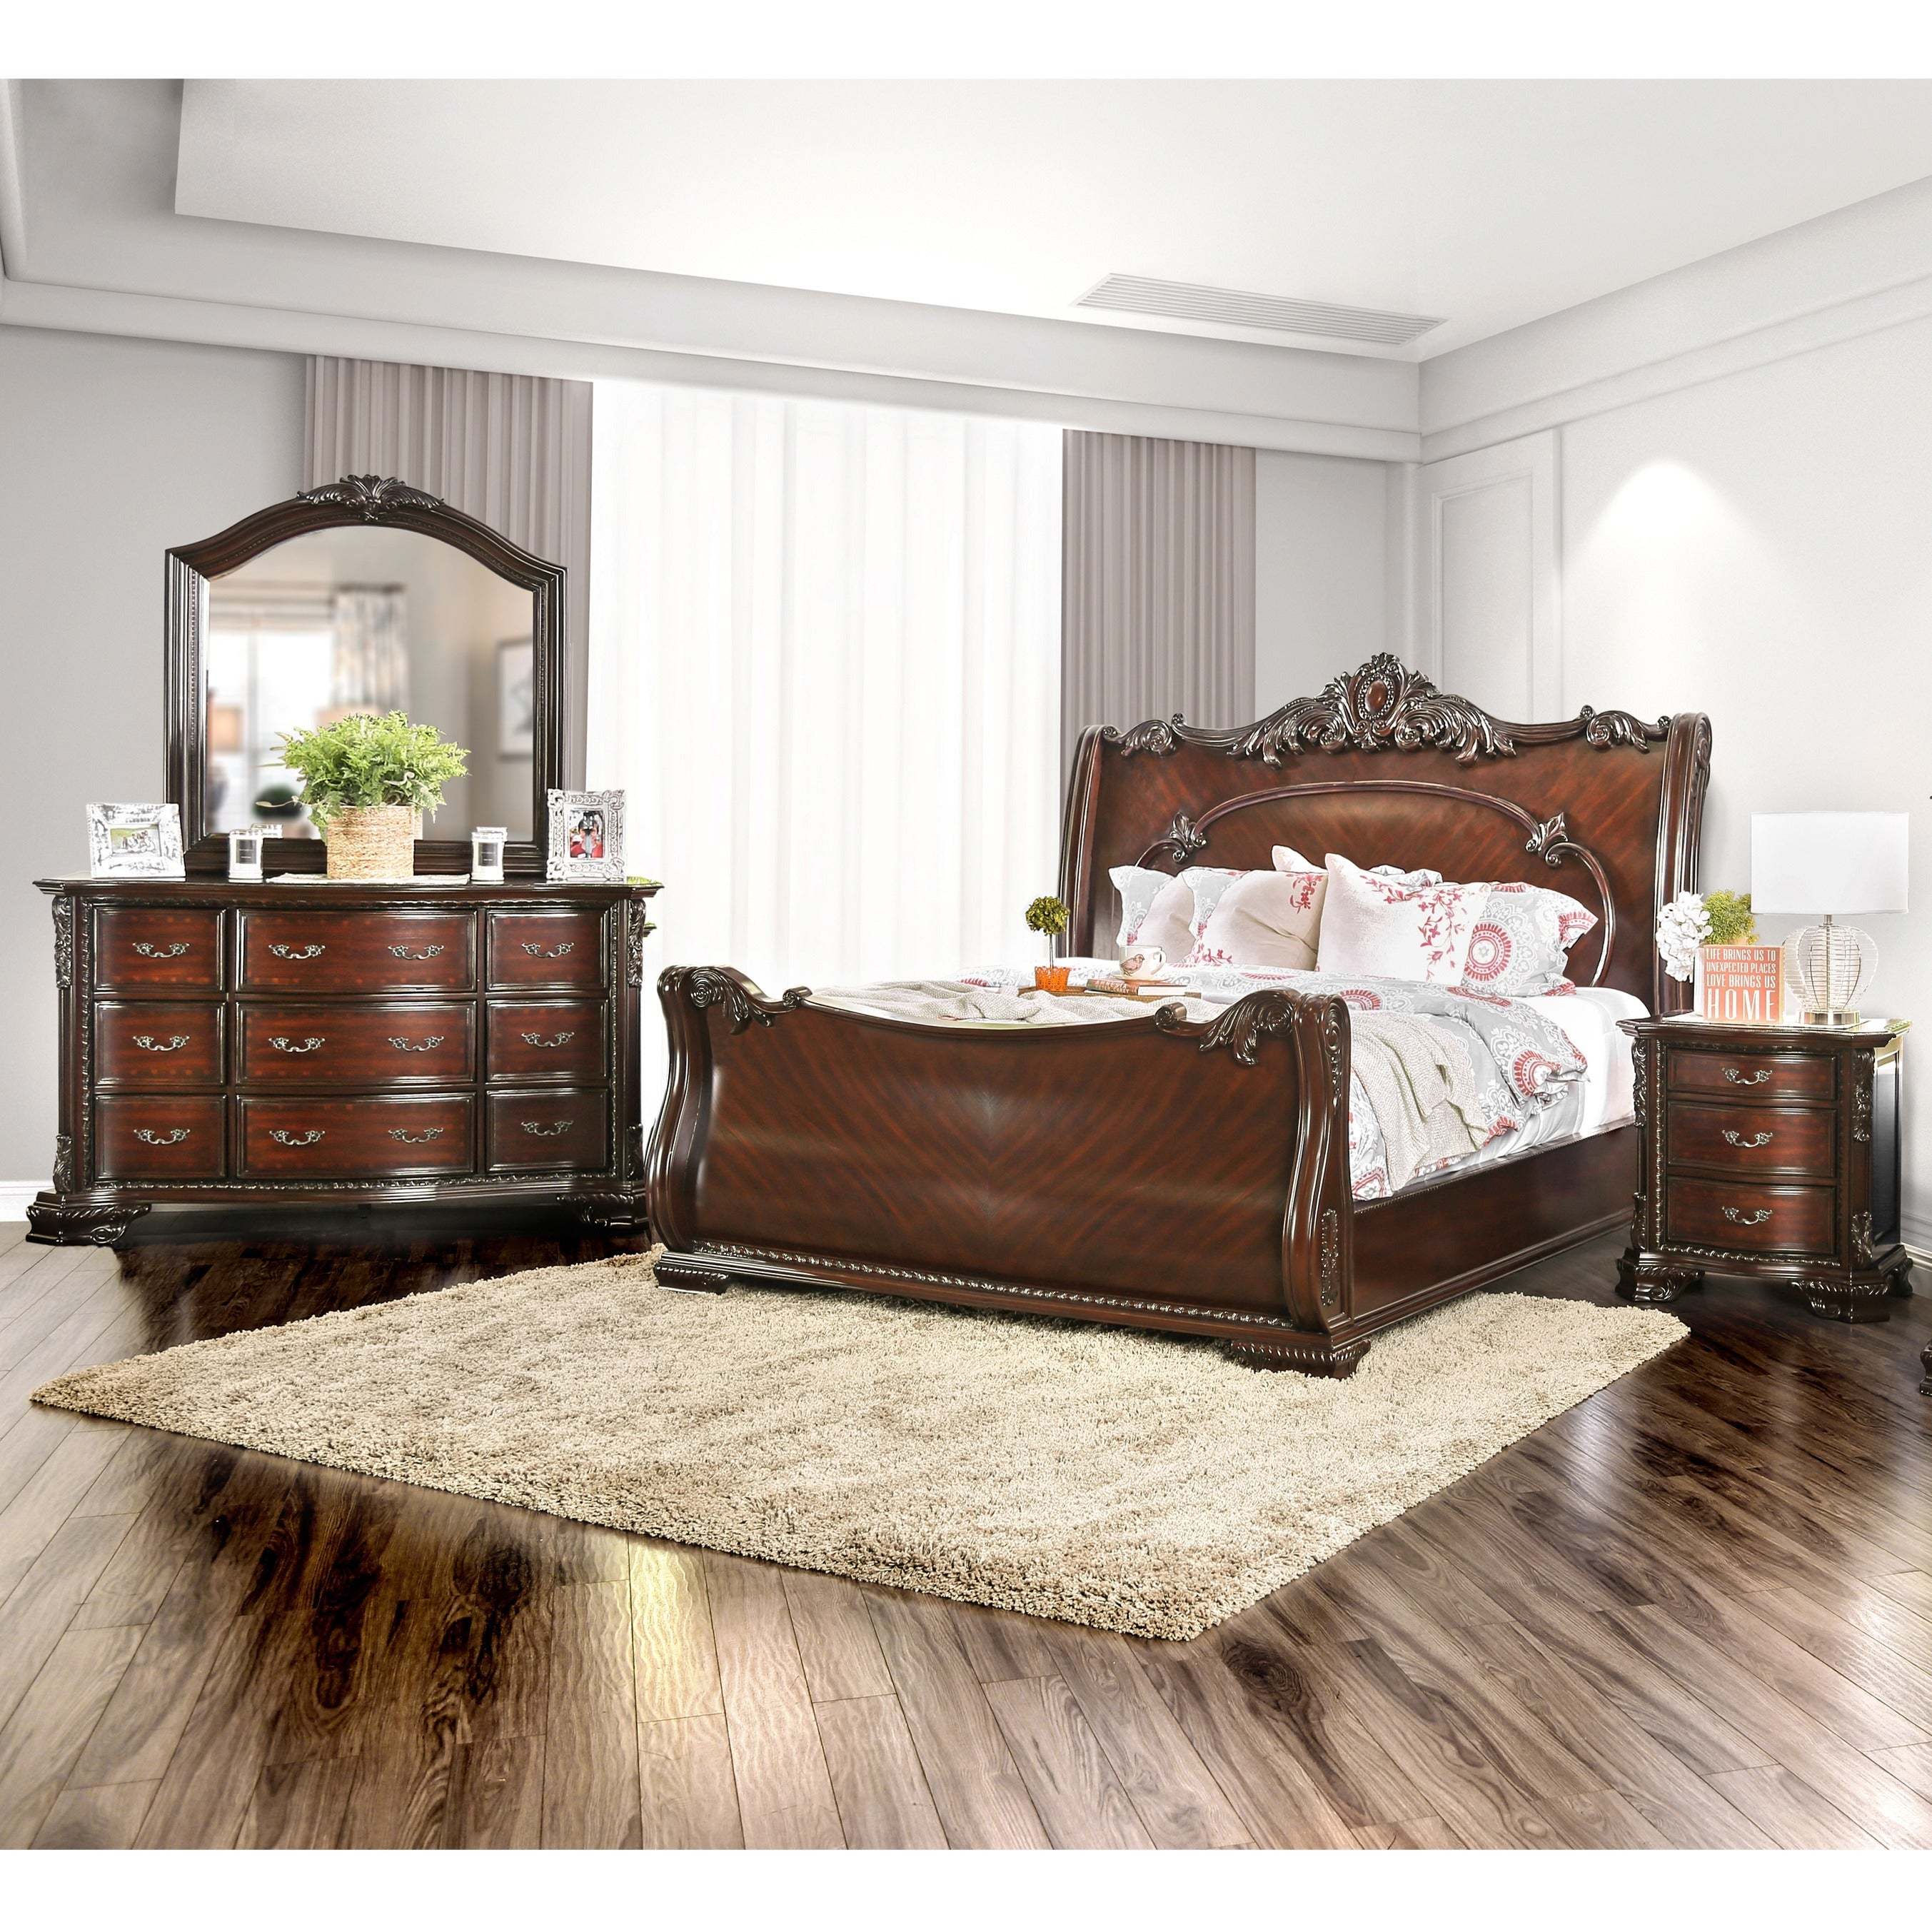 table bed solid on item wood alibaba furniture with and aliexpress sets bedroom size leather luxury european king from com set american procare in beside style